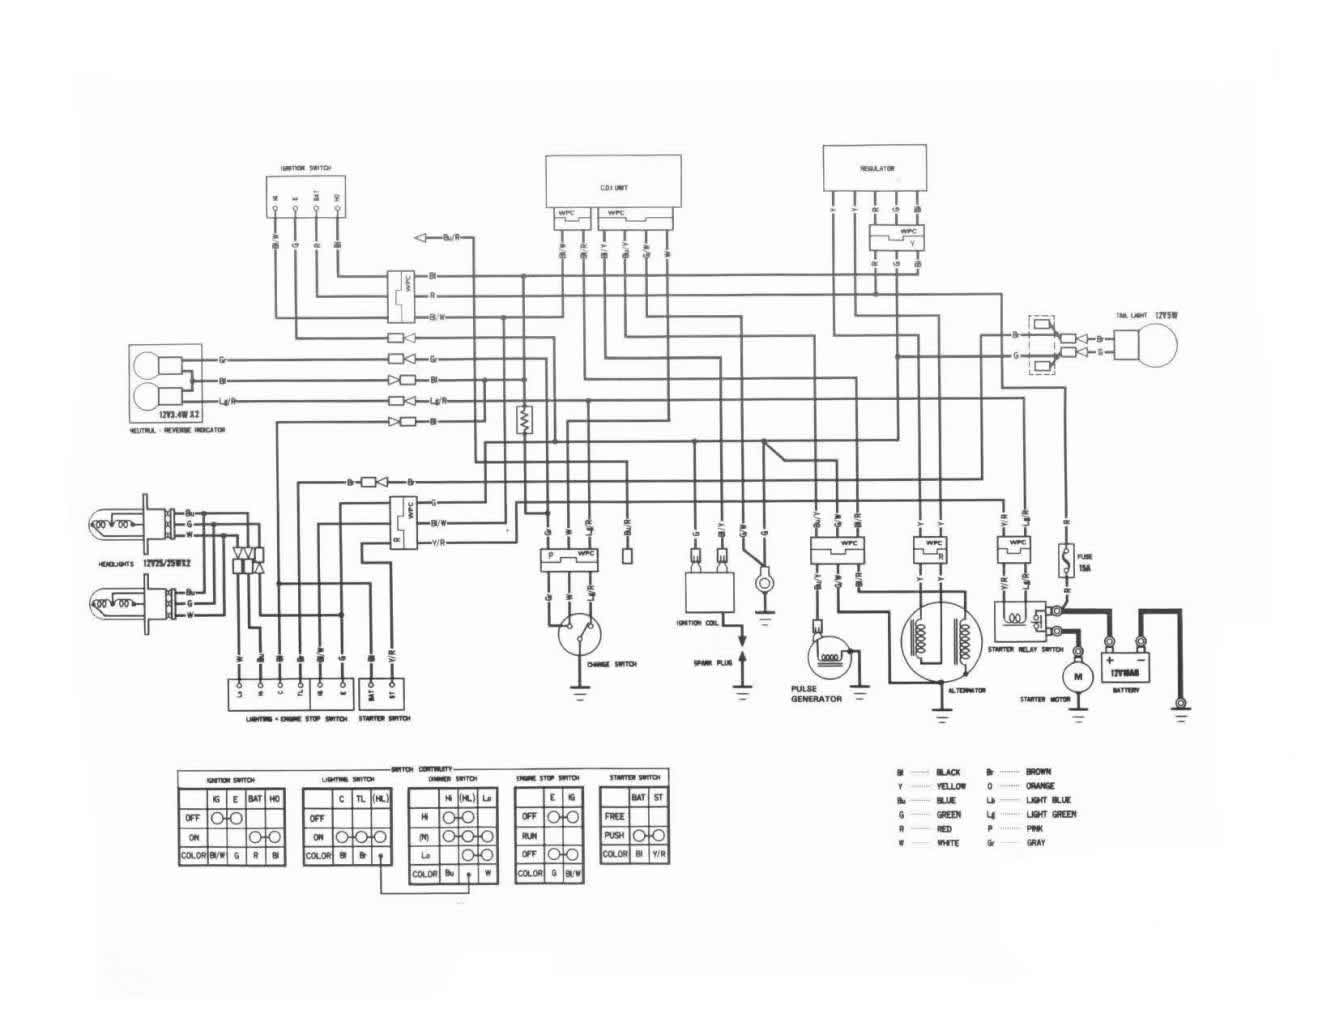 Honda 300 Wiring Diagram - Wiring Diagramsgalleriadelregalo.it